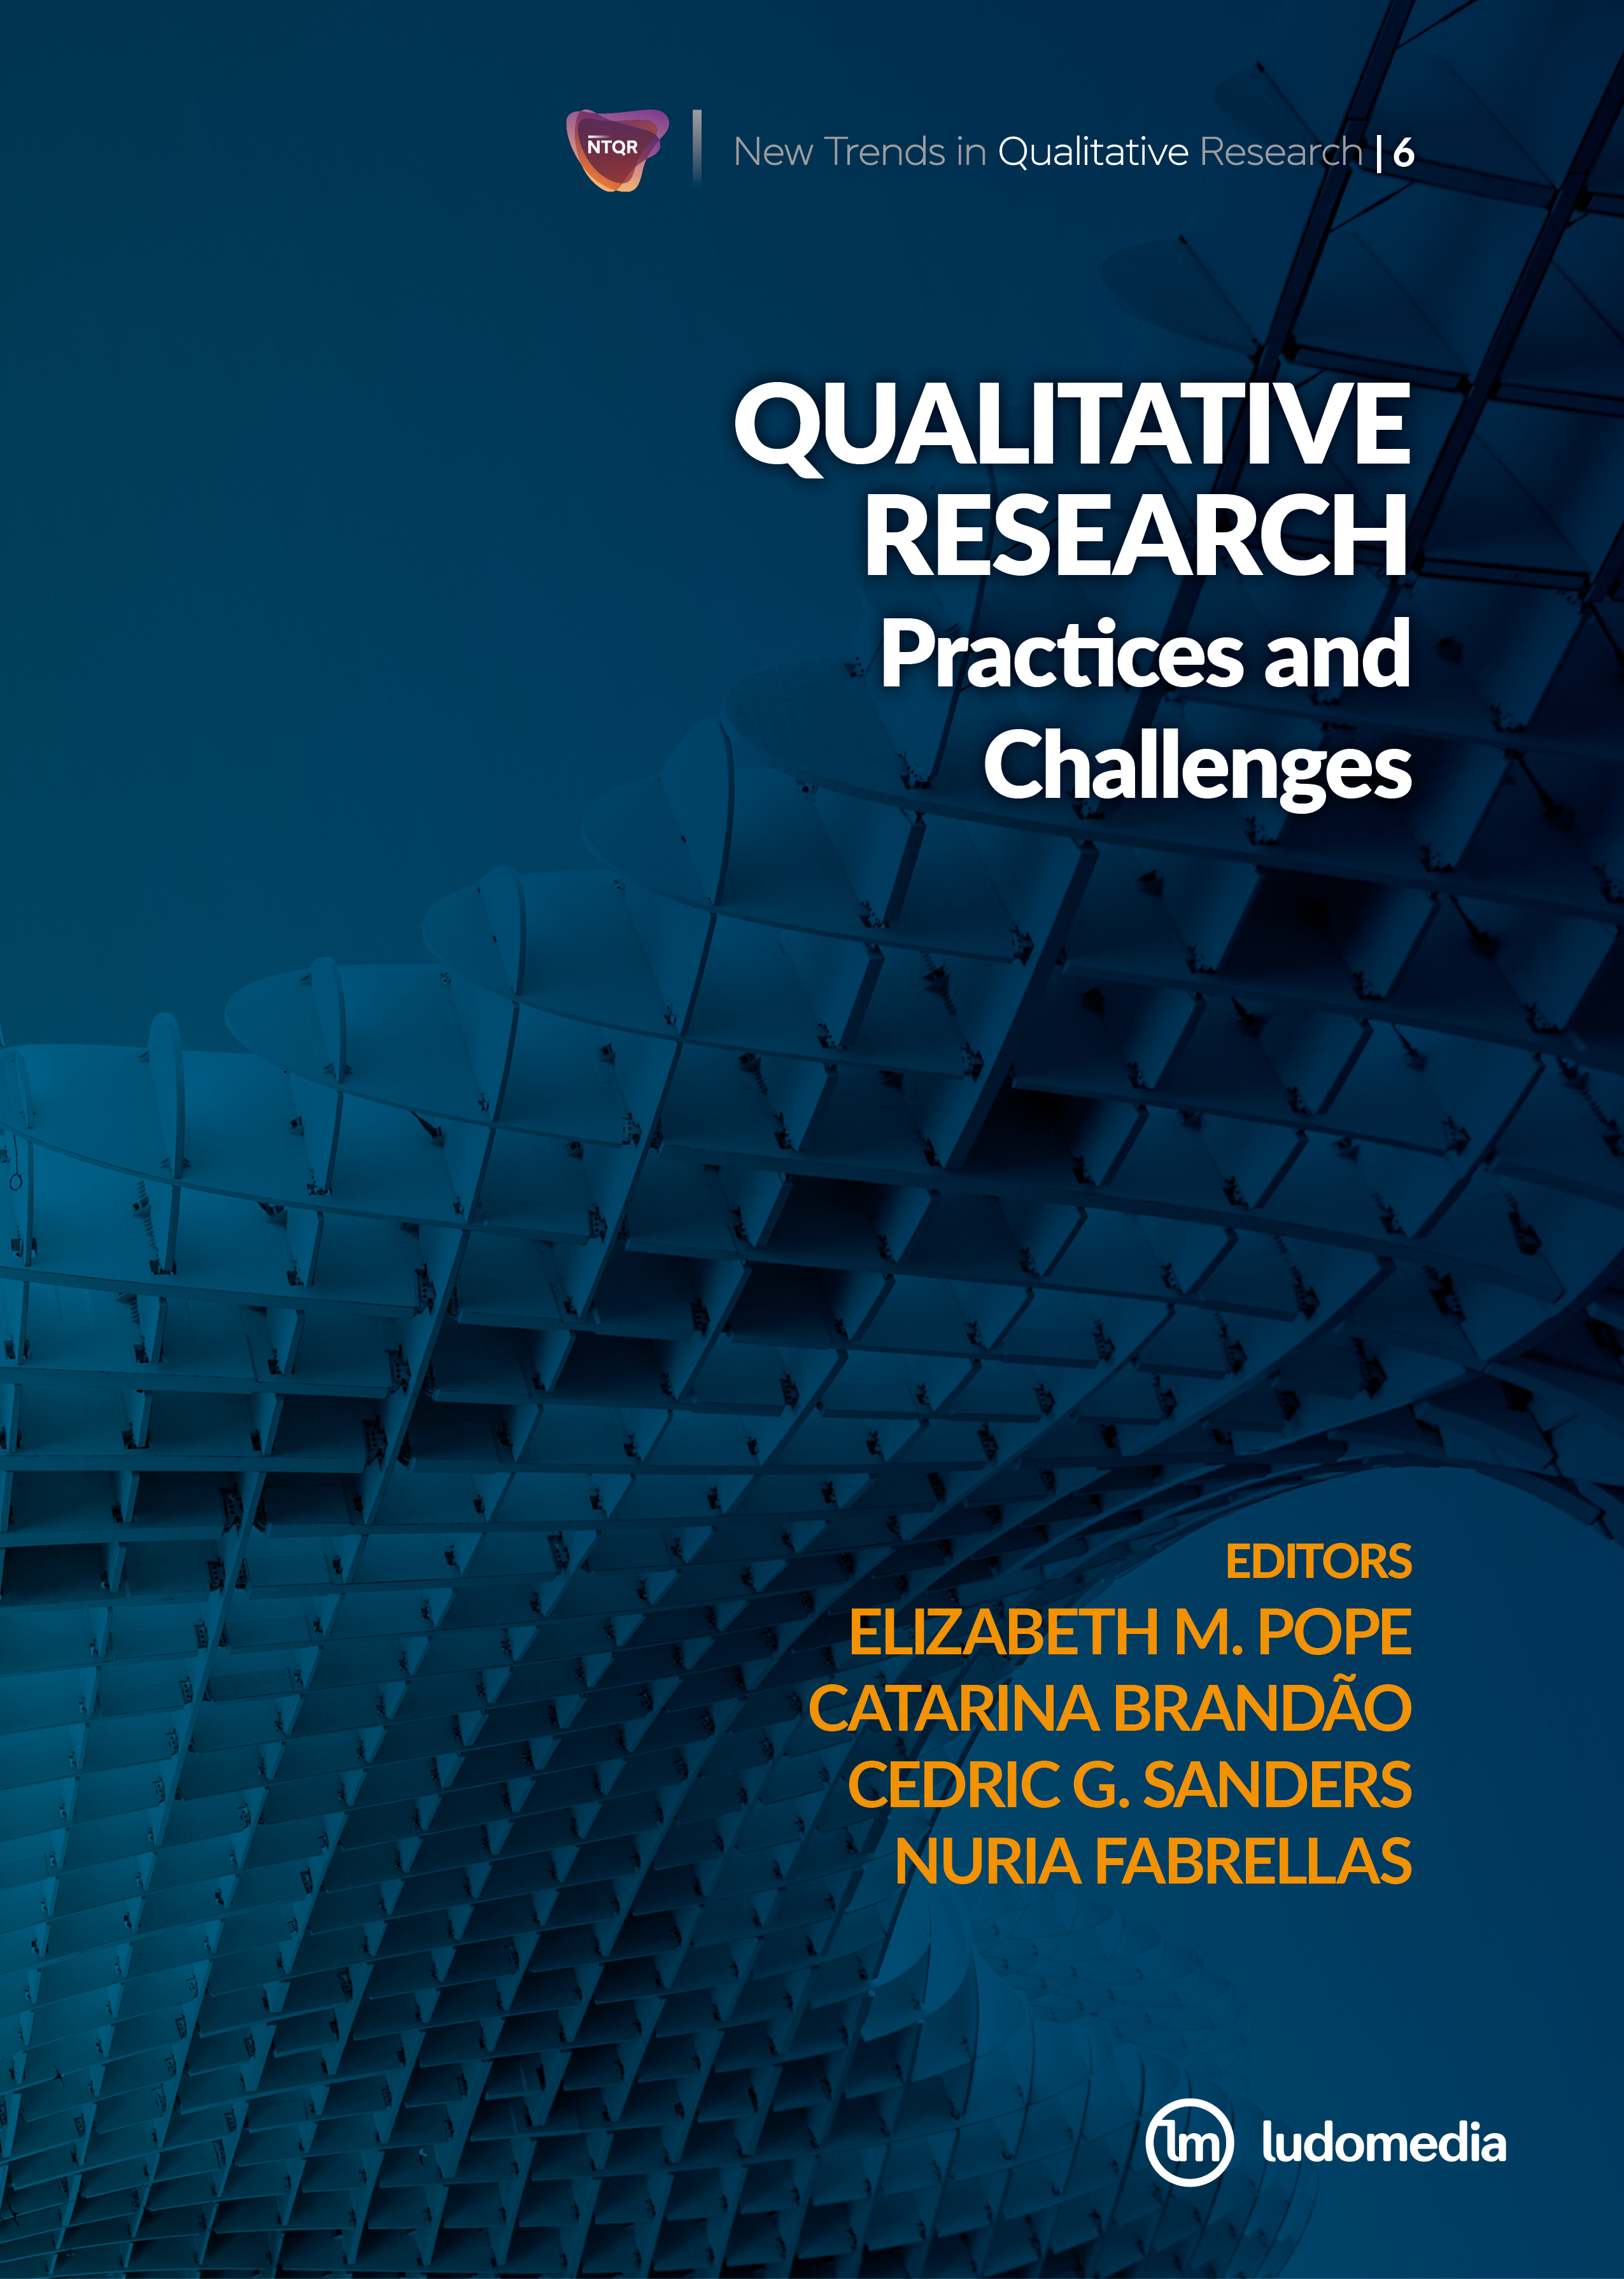 Ver Vol. 6 (2021): Qualitative Research: Practices and Challenges